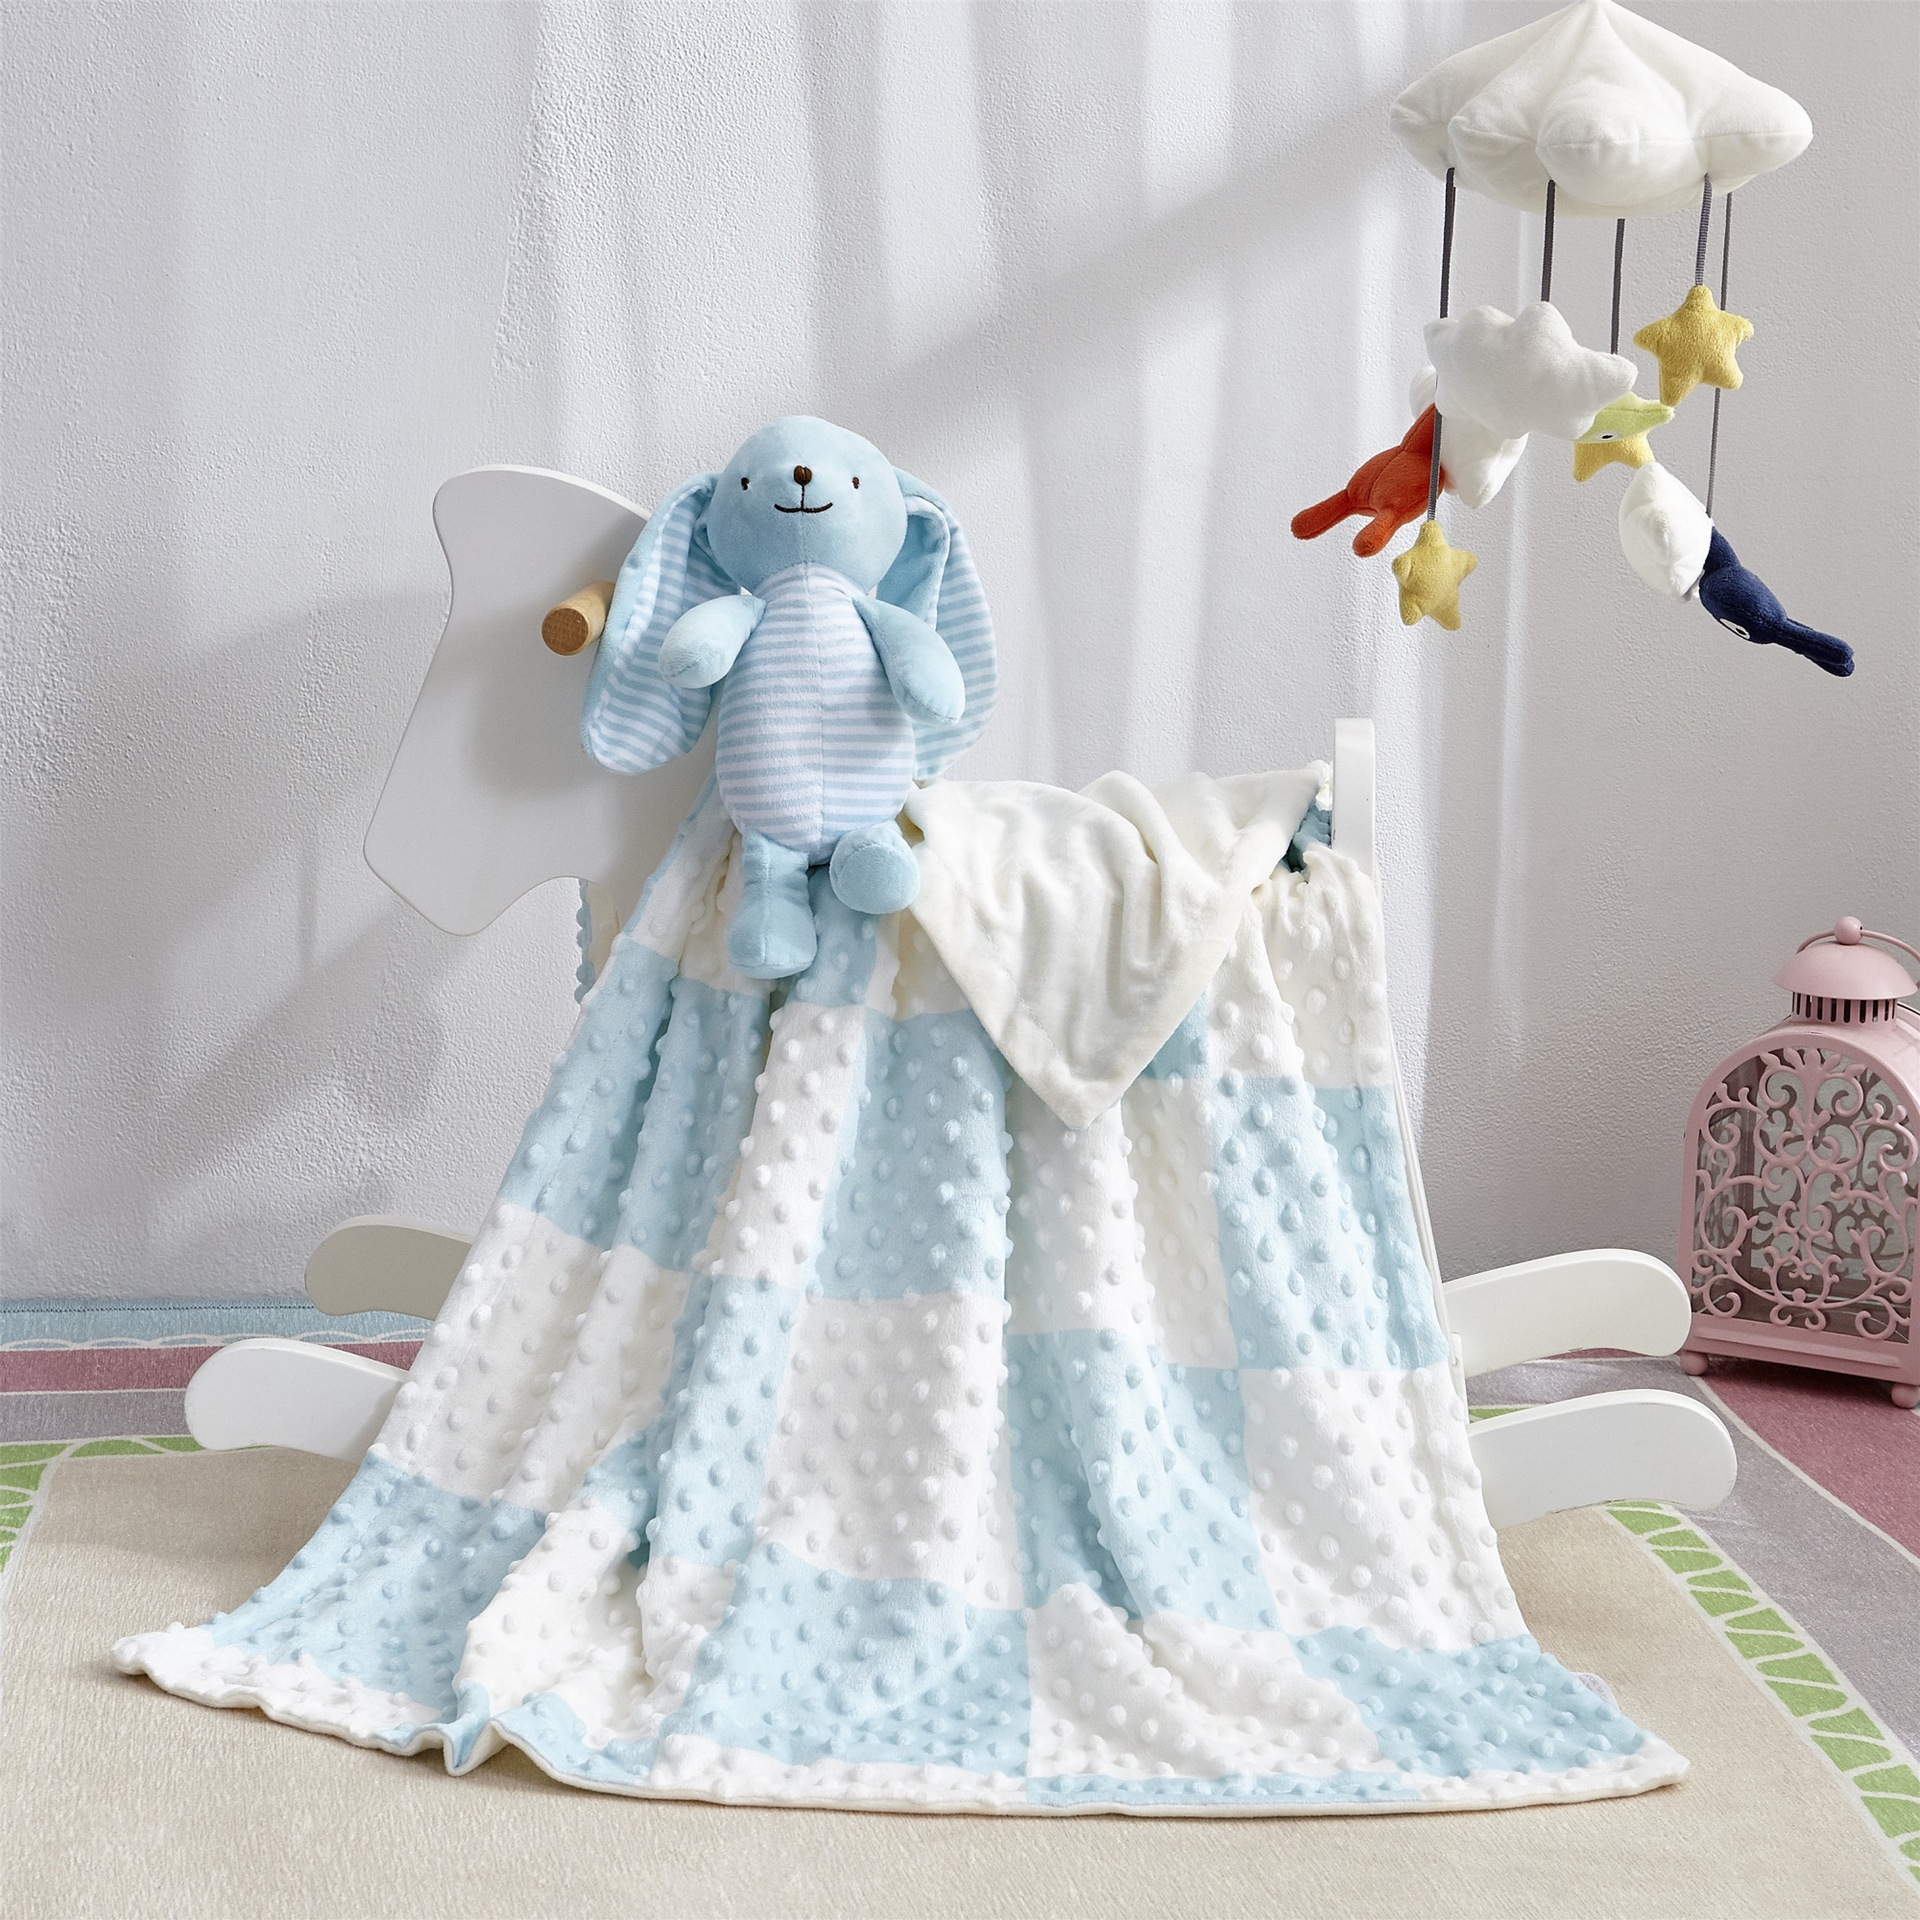 Newborn Baby Quilts Blanket With Toy Soft Stroller Sleep Cover Cartoon Beanie Infant Bedding Swaddle Wrap Kids Bath Towel